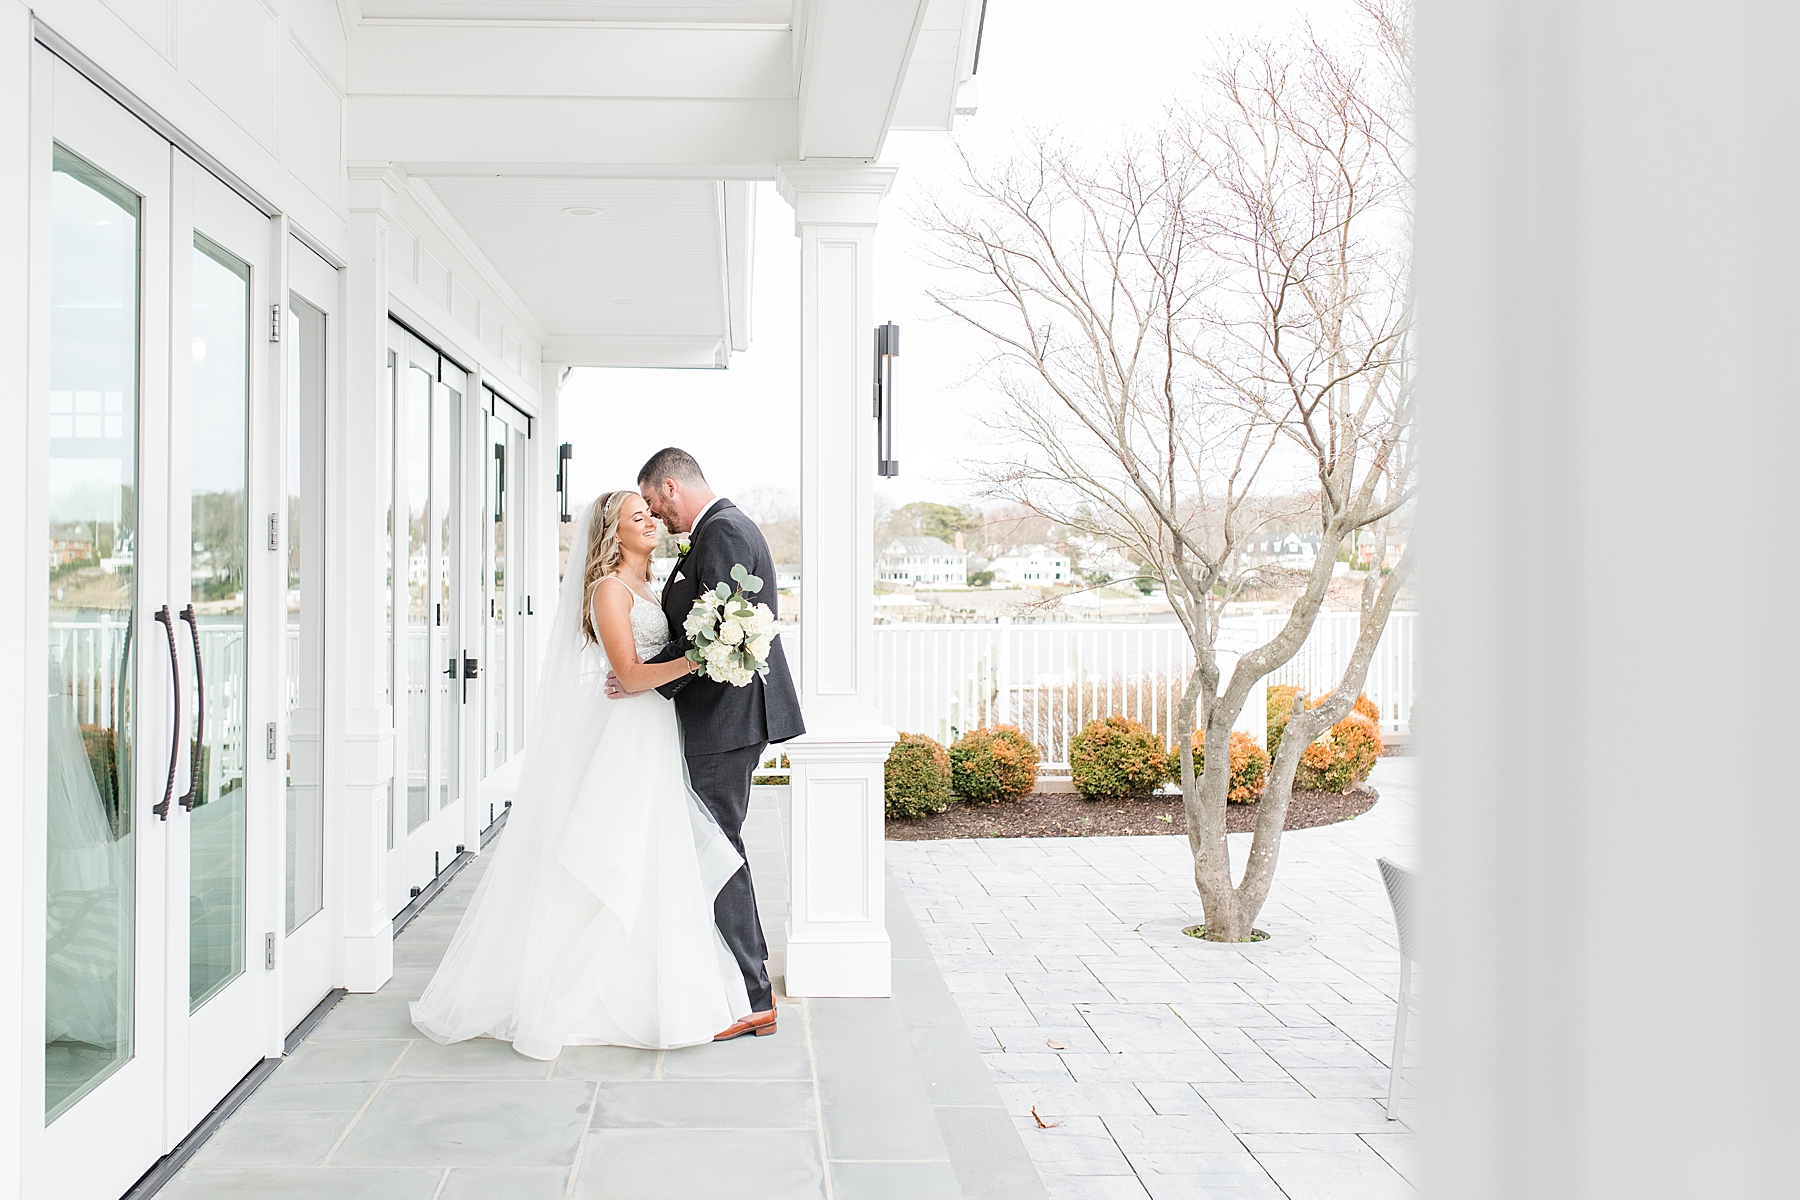 Kendal + Marc's Happily Ever After Party at the Crystal Point Yacht Club